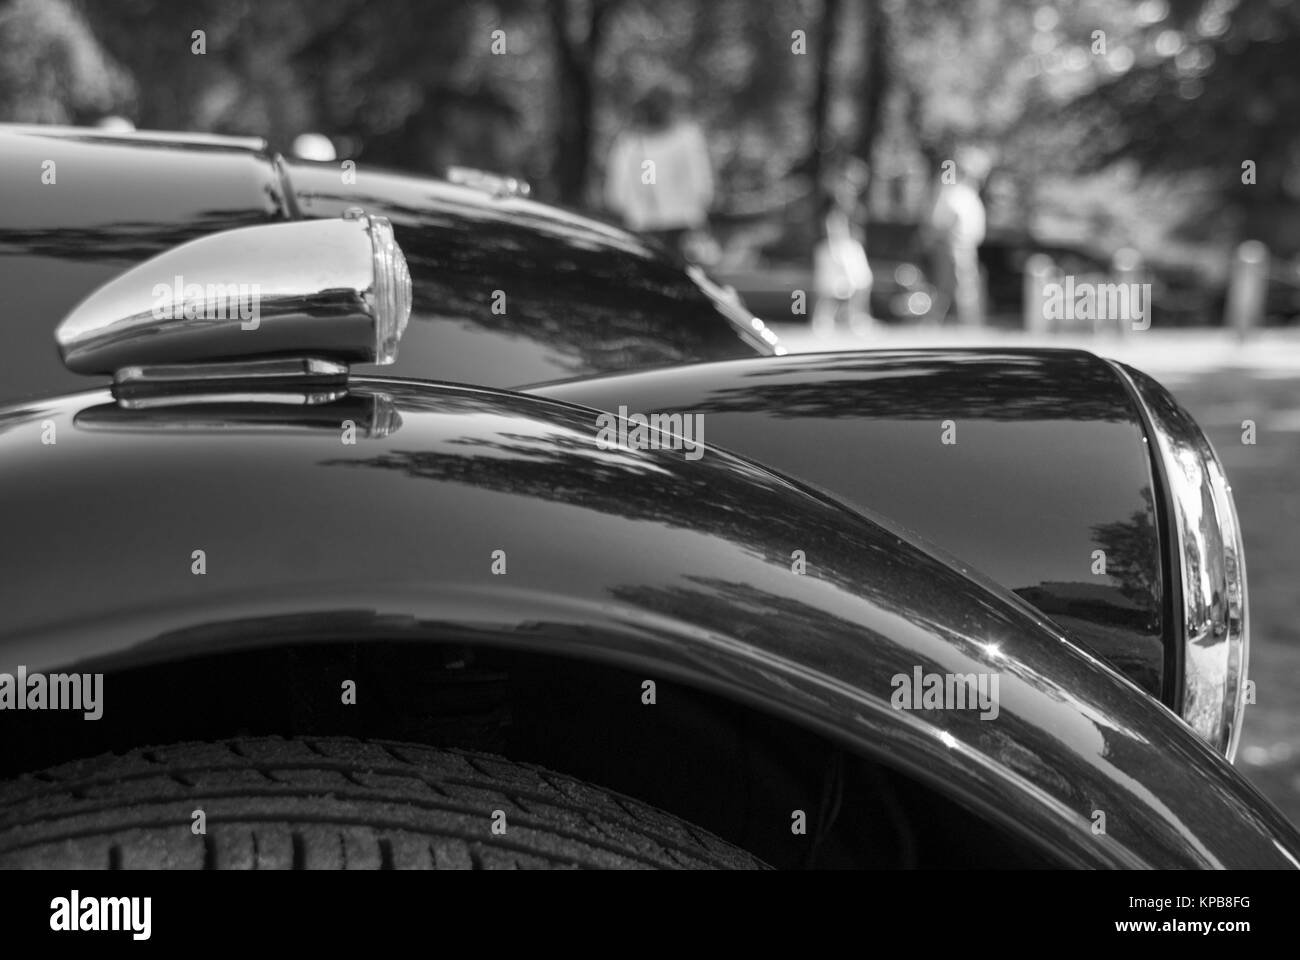 Front of a classic car - Stock Image